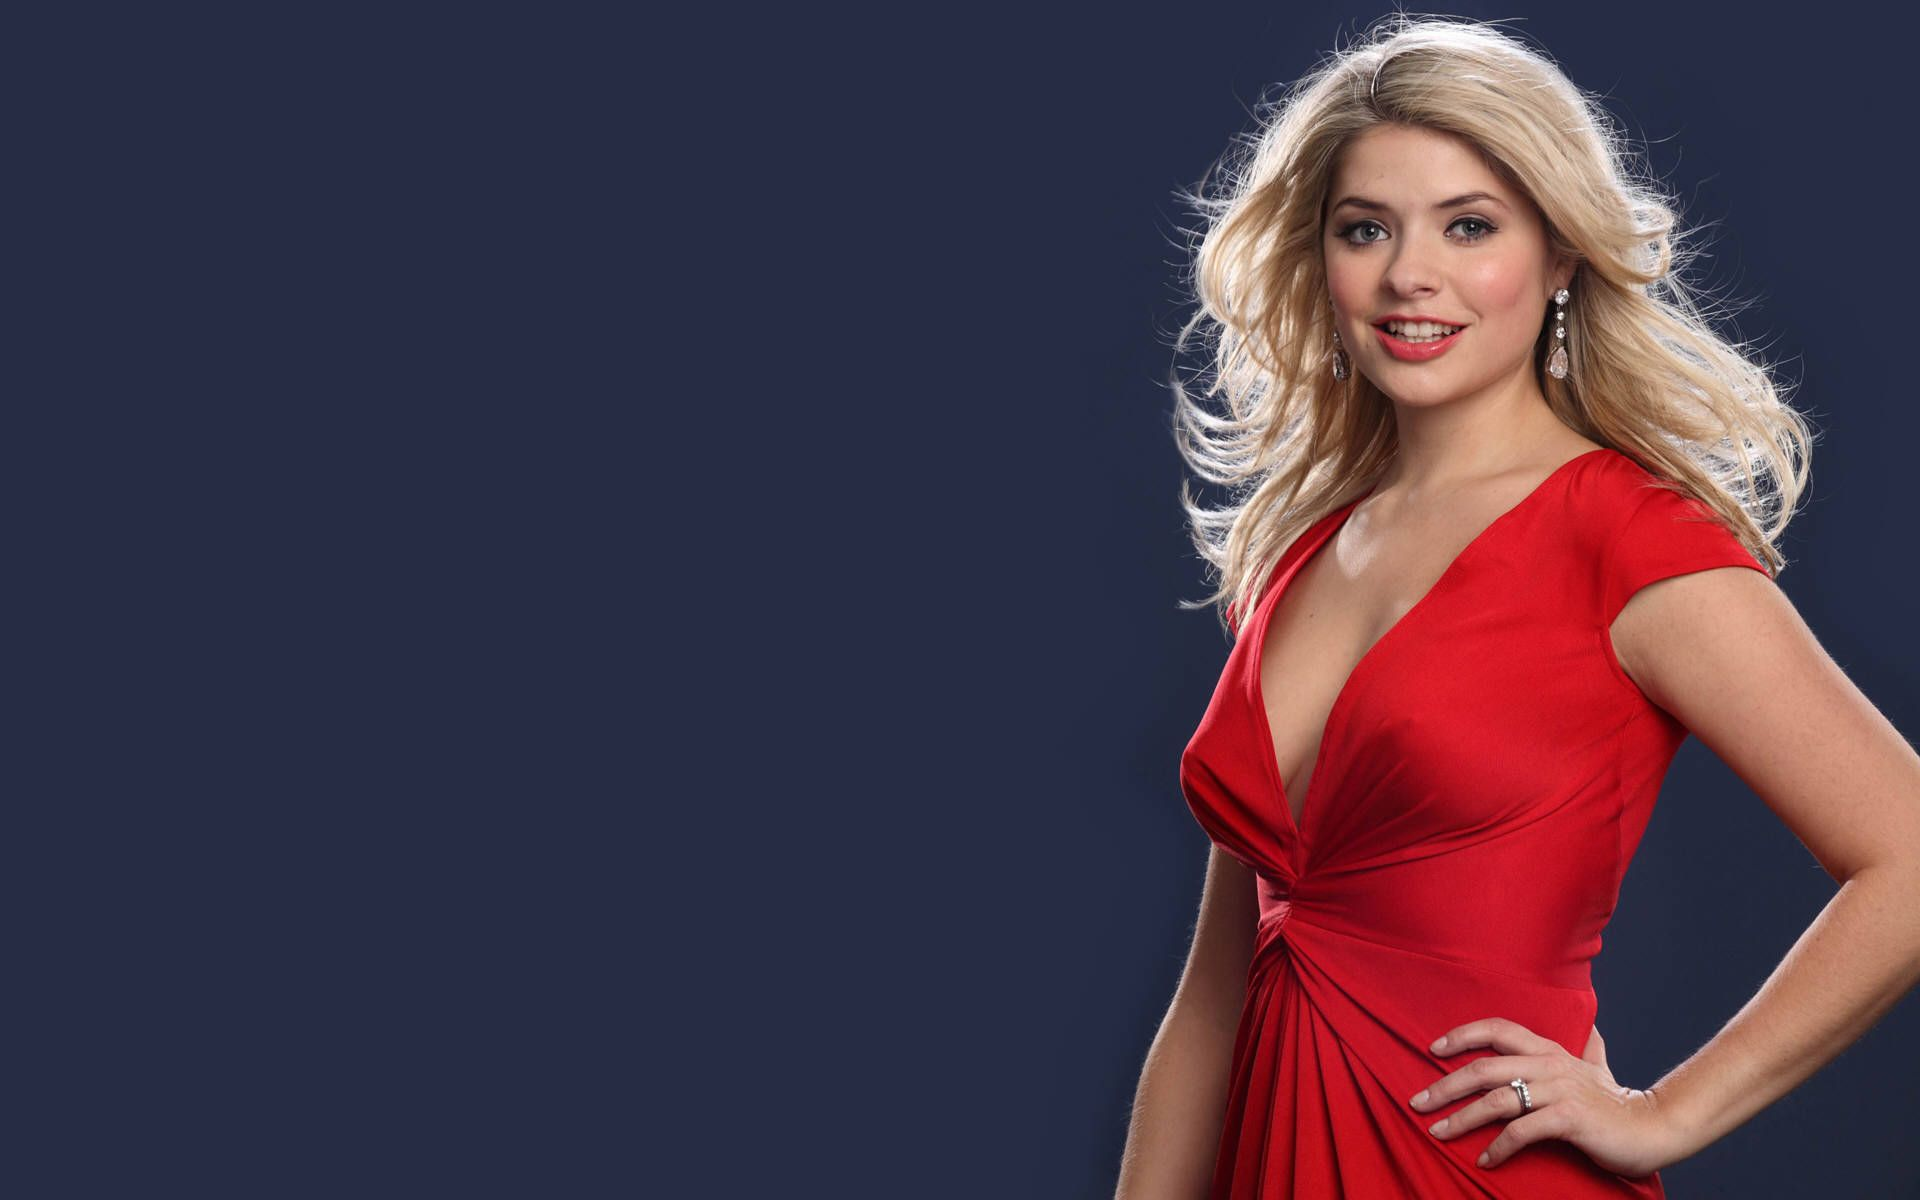 1920x1200 - Holly Willoughby Wallpapers 5